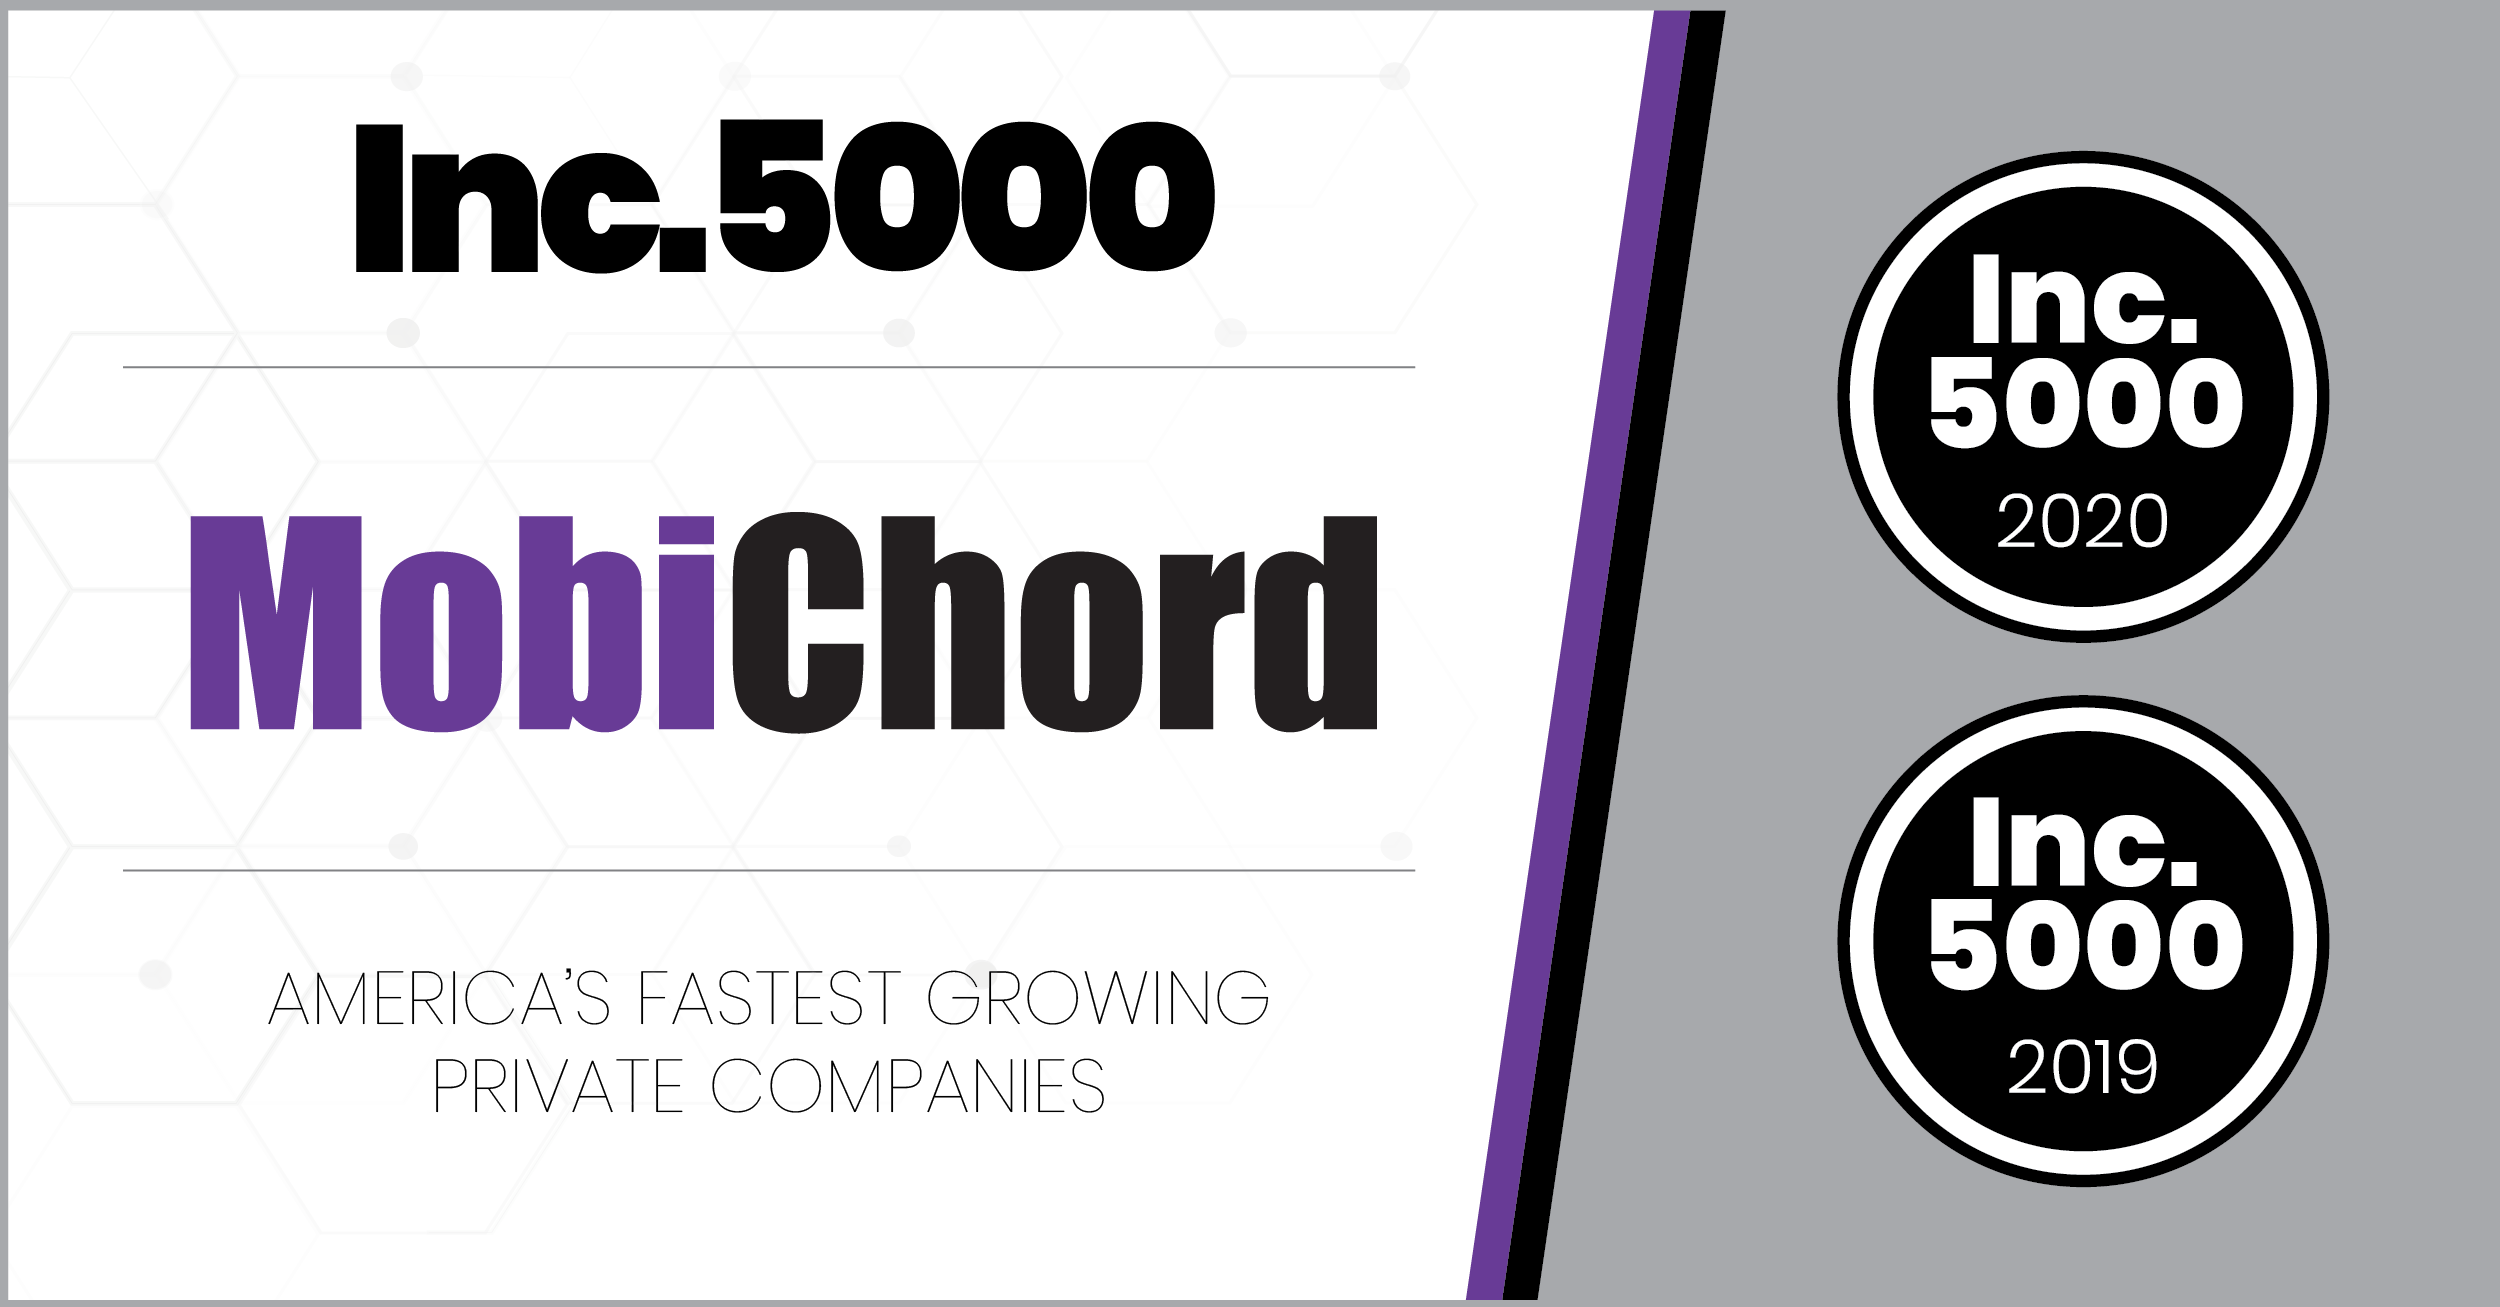 MobiChord Makes Inc. 5000's List of Fastest-Growing Private Companies for the Second Consecutive Year